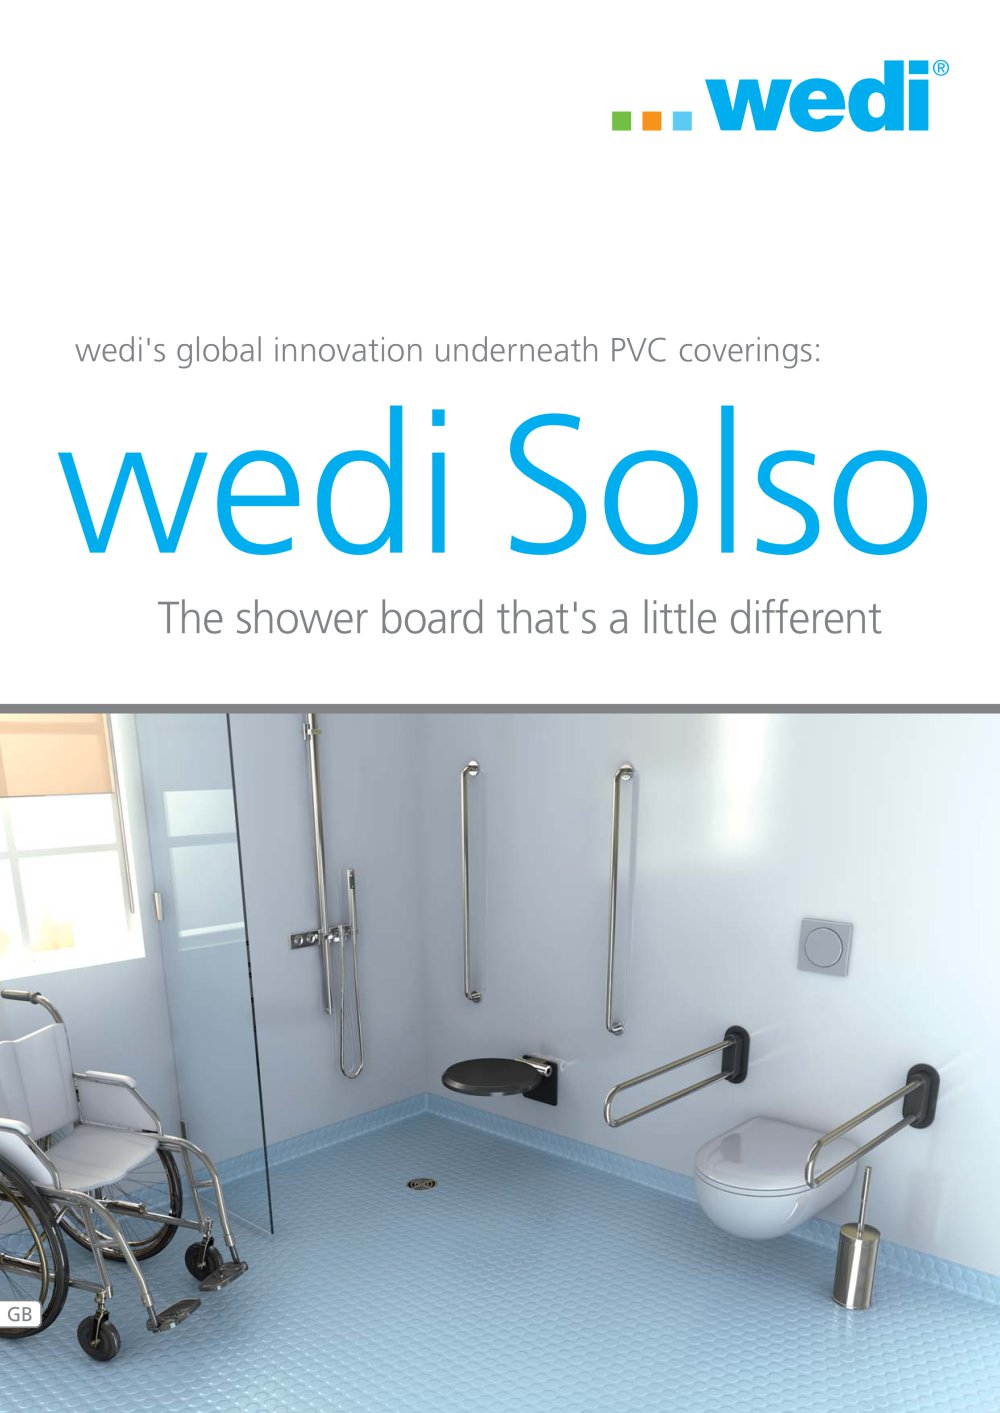 Wedi Emsdetten wedi solso wedi gmbh pdf catalogues documentation brochures